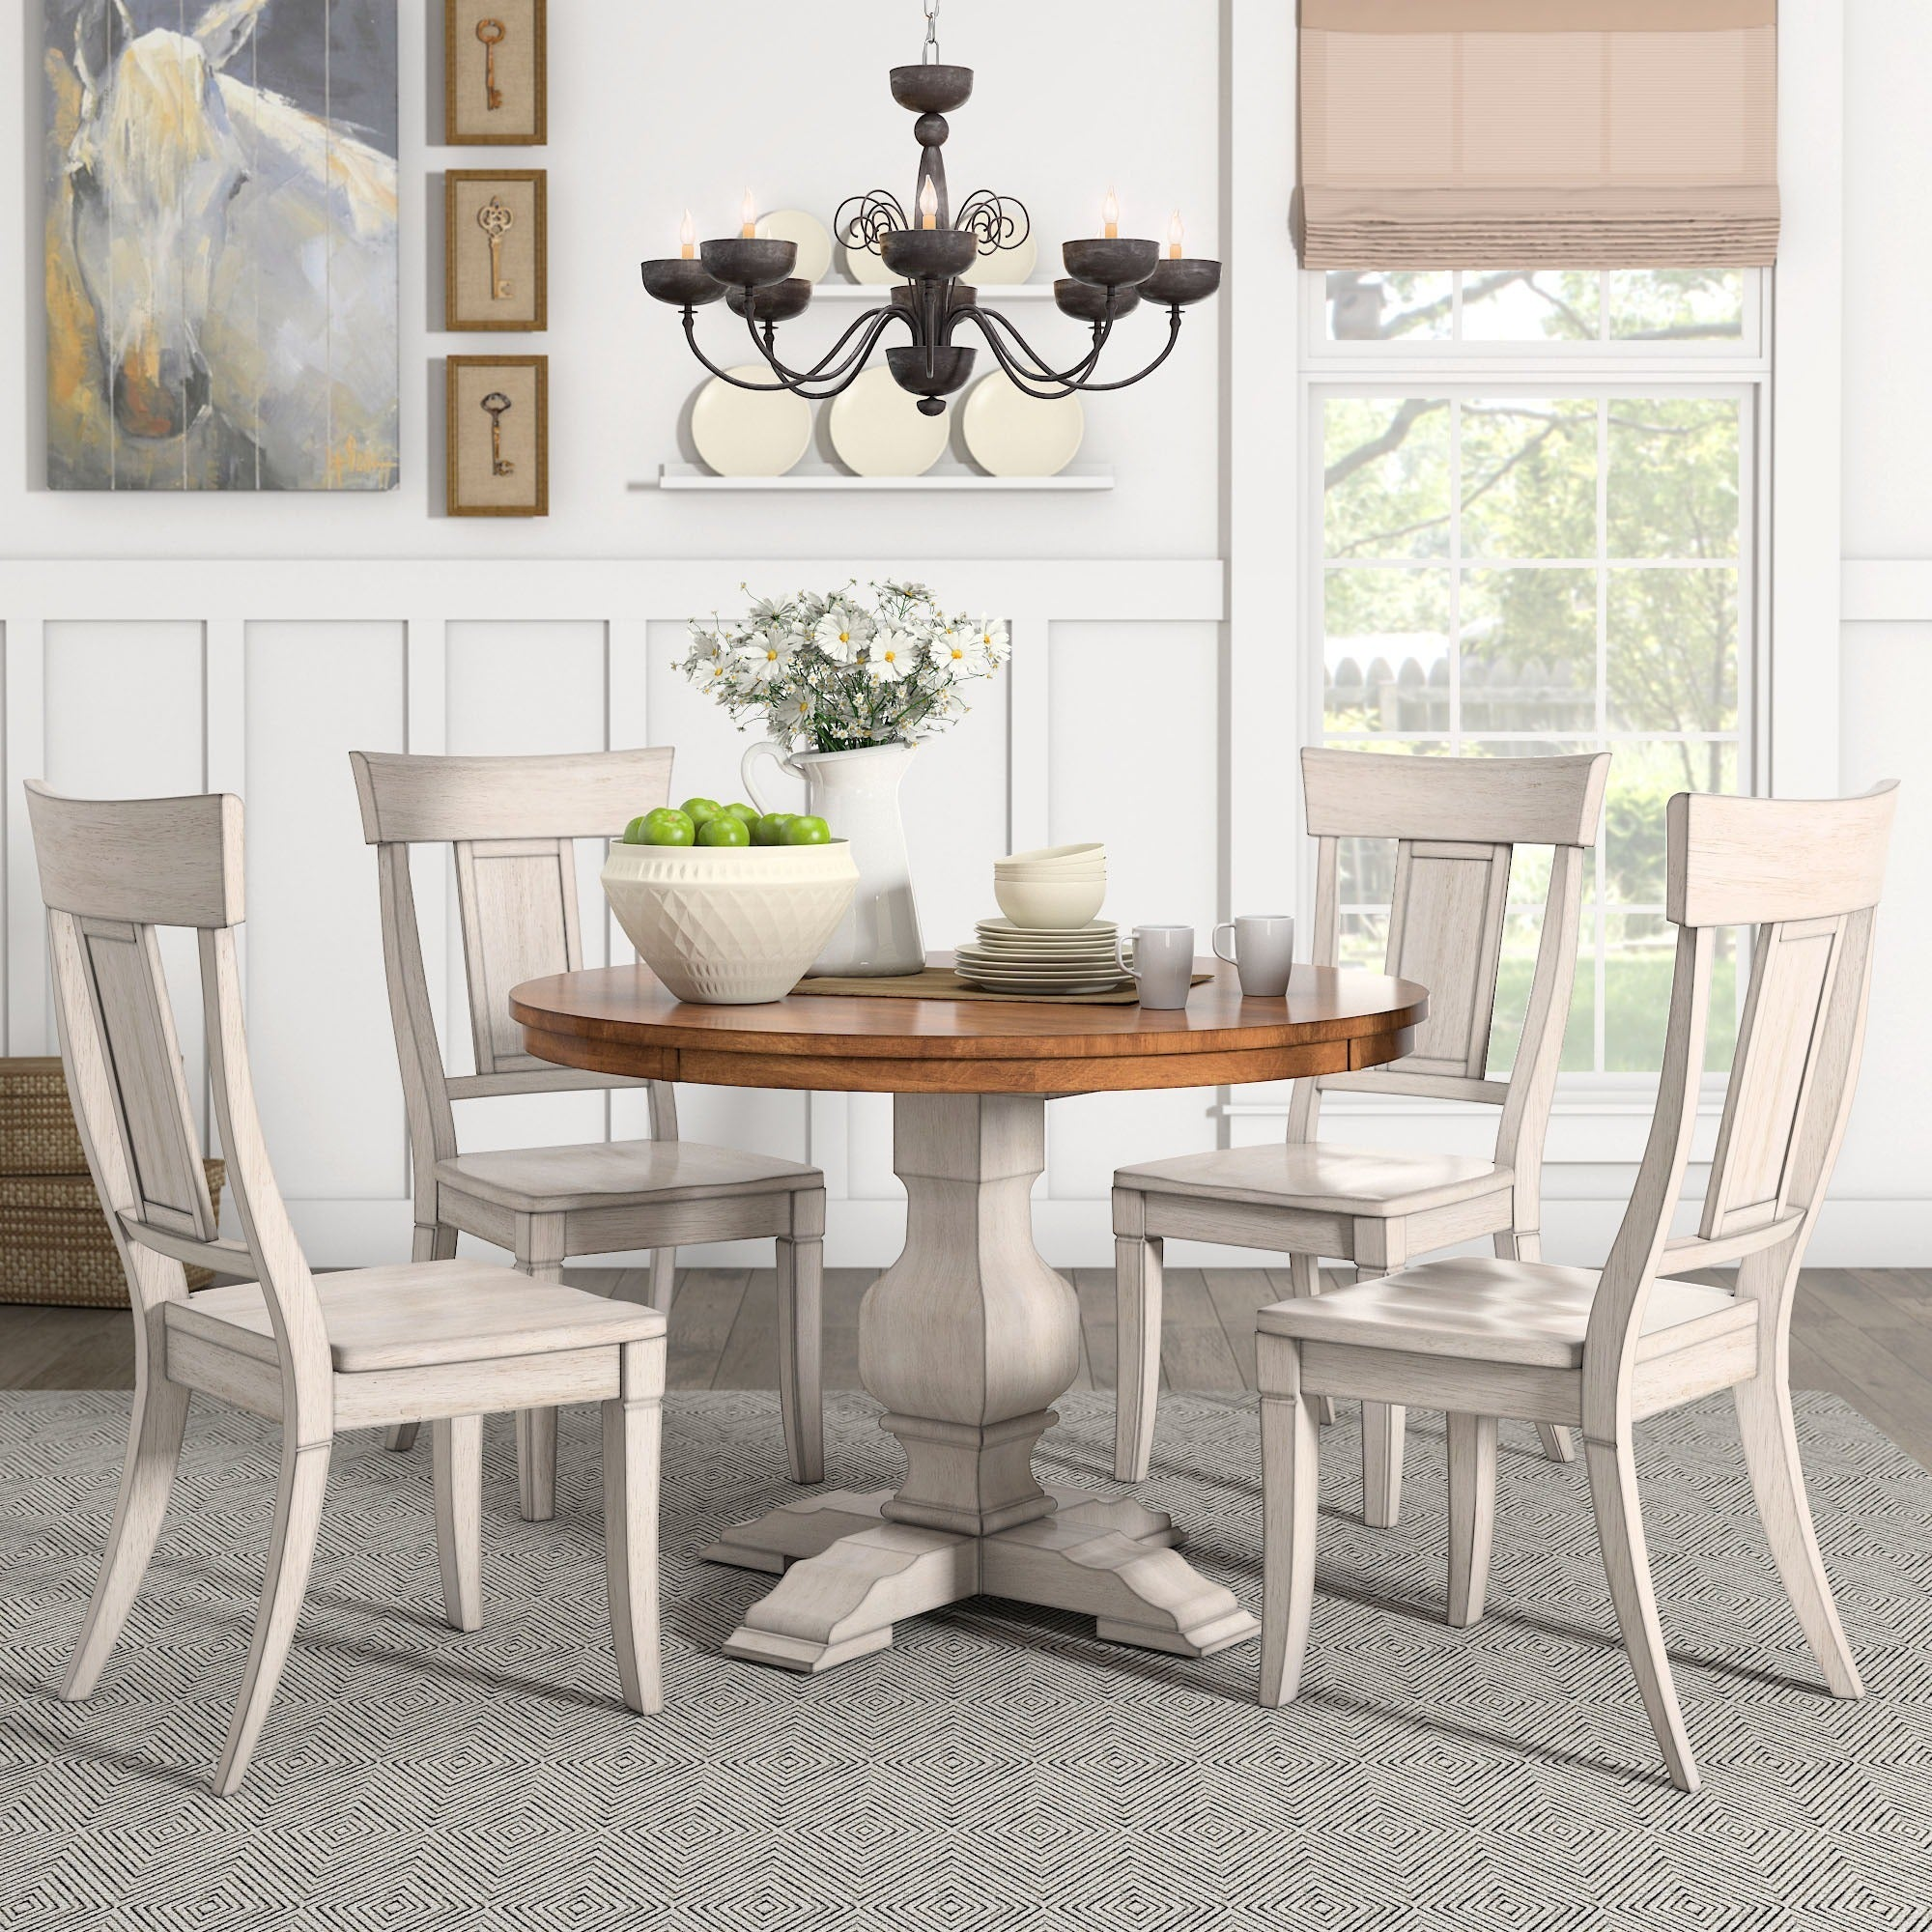 Eleanor Antique White Round Solid Wood Top 5 Piece Dining Set